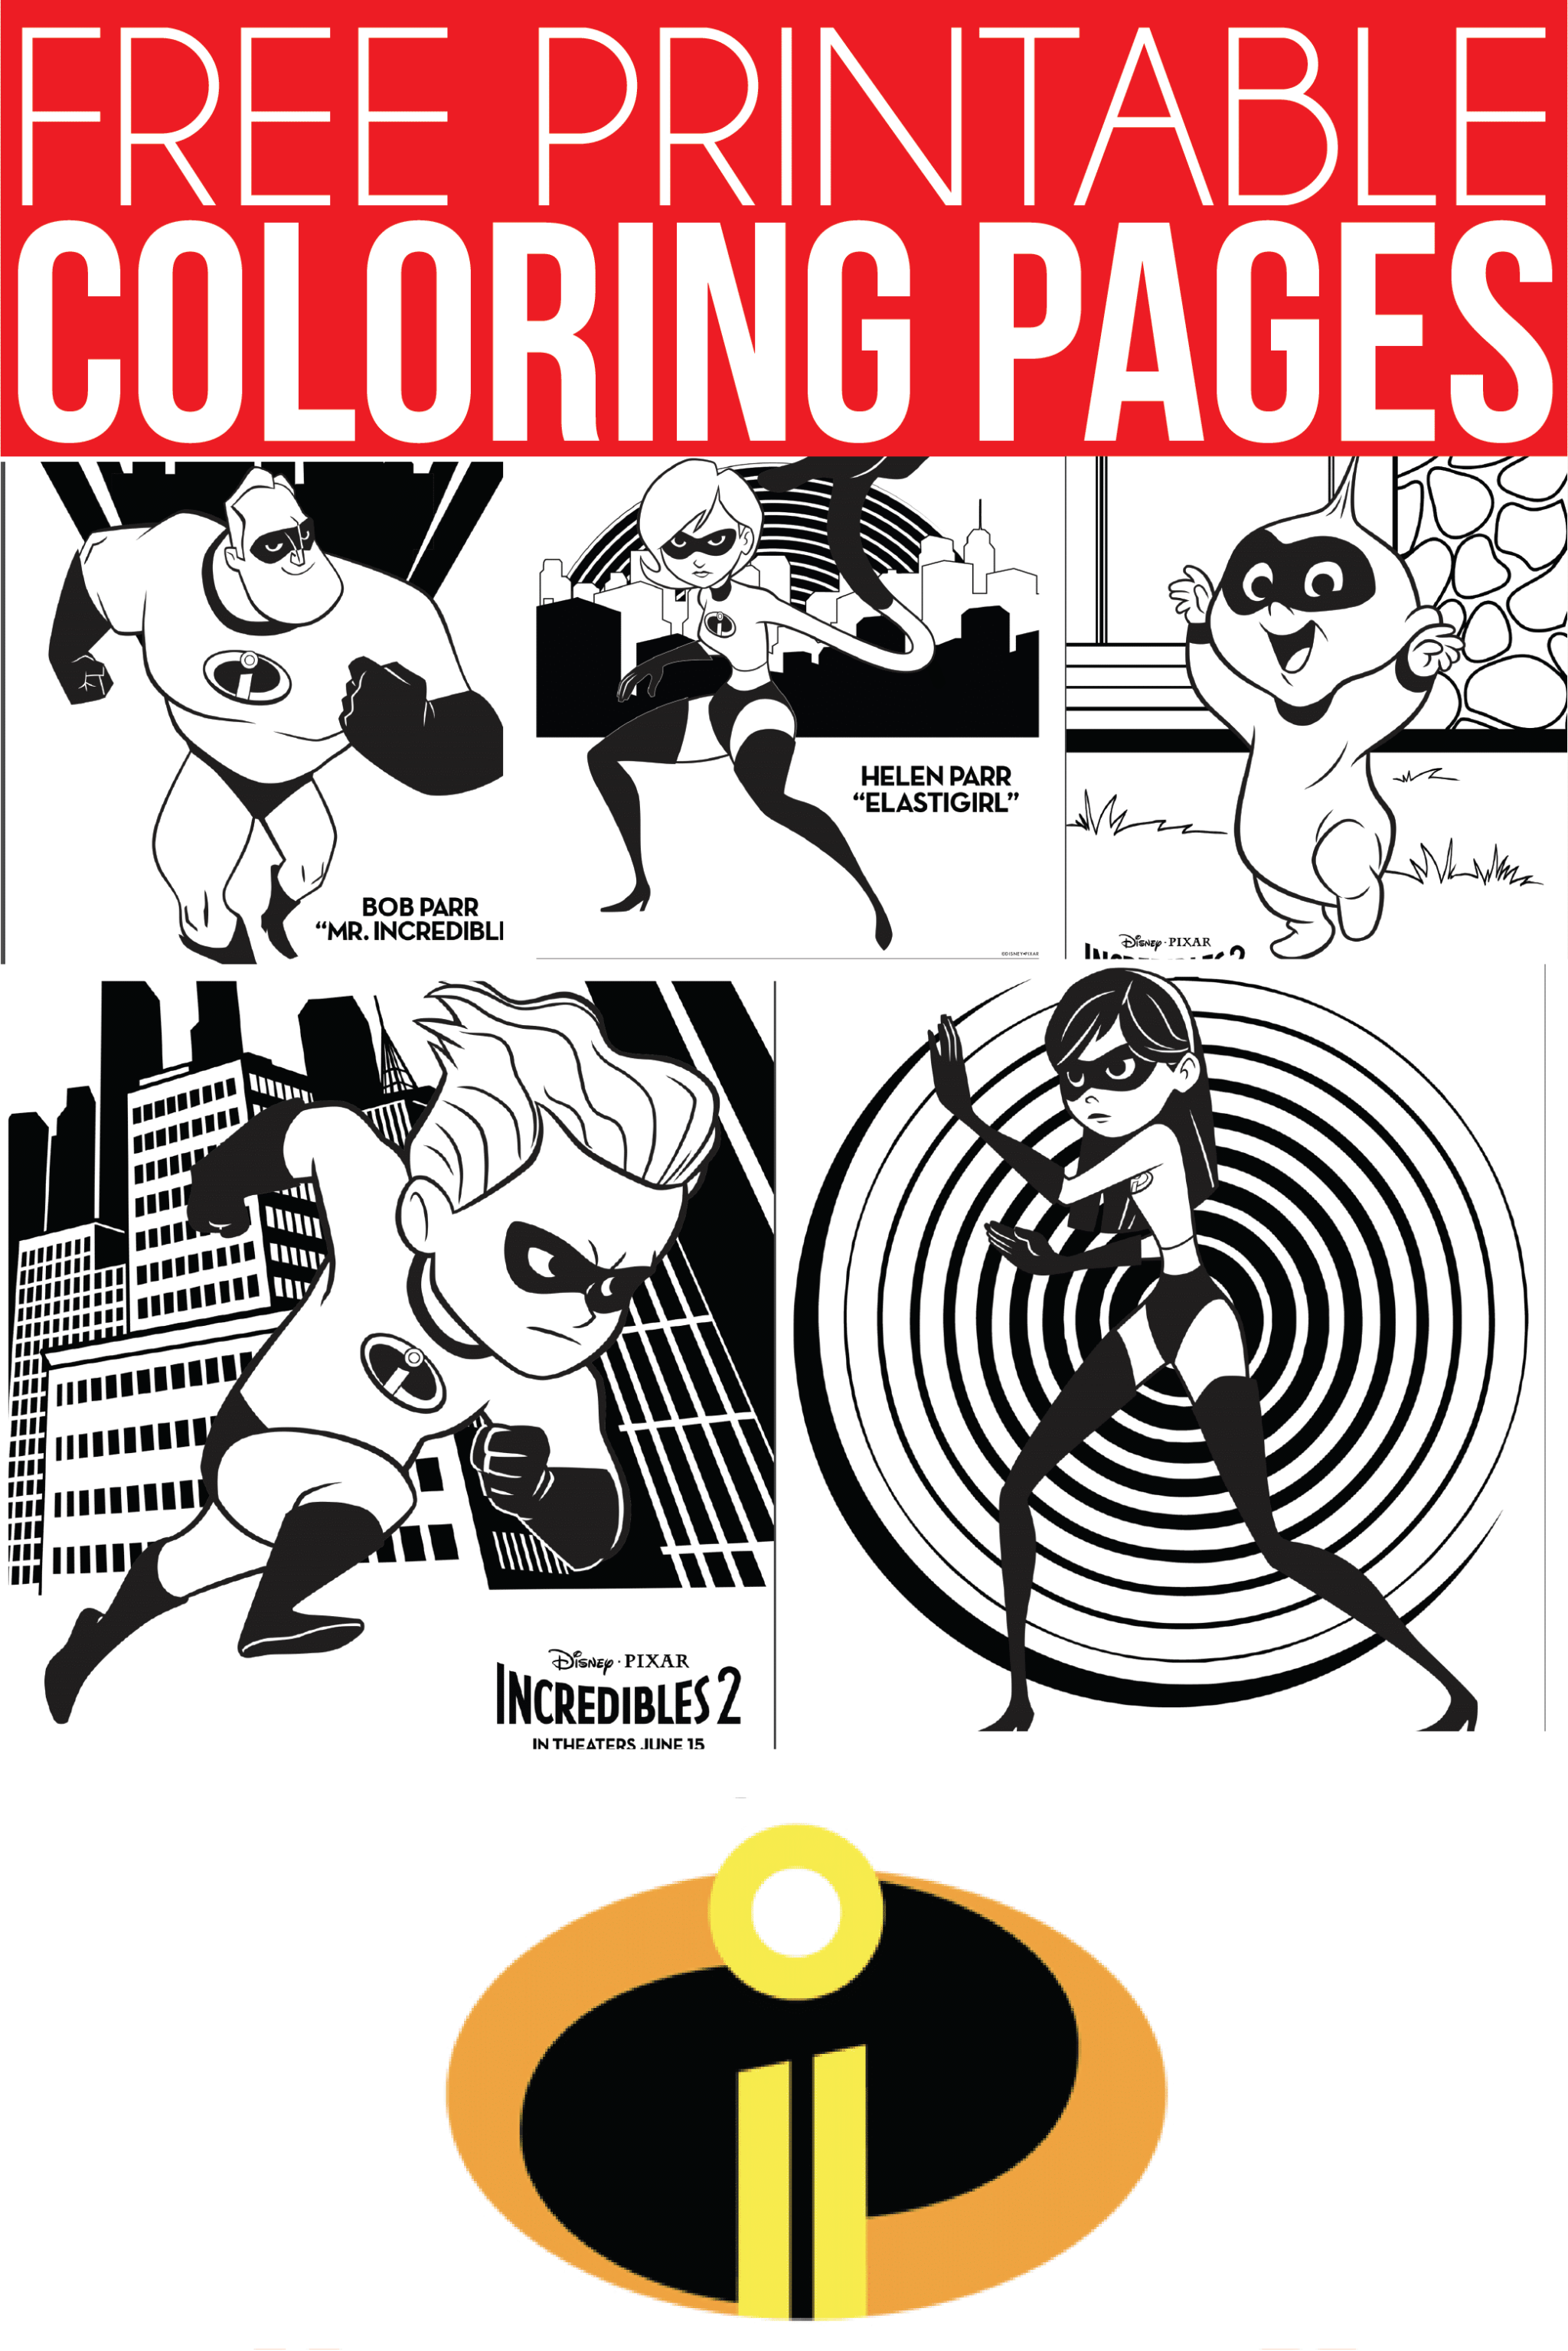 Incredibles 2 coloring pages, activity sheets, and more family fun for Disney lovers!